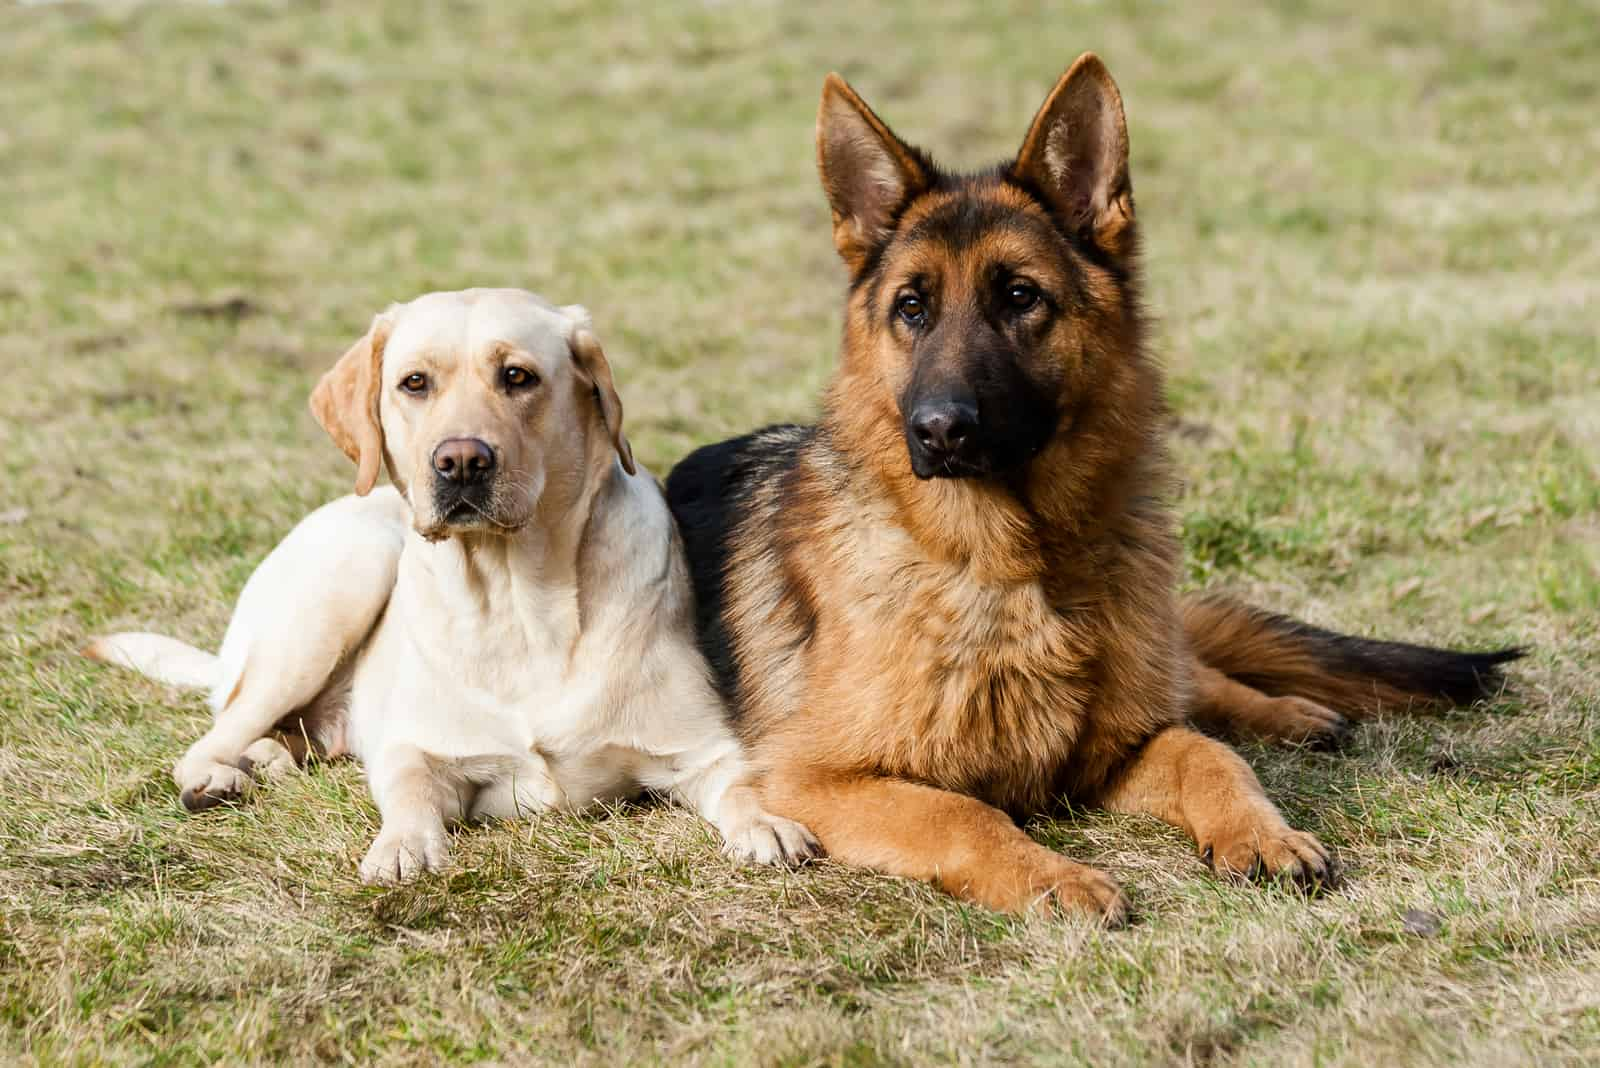 german shepherd and labrador sitting next to each other